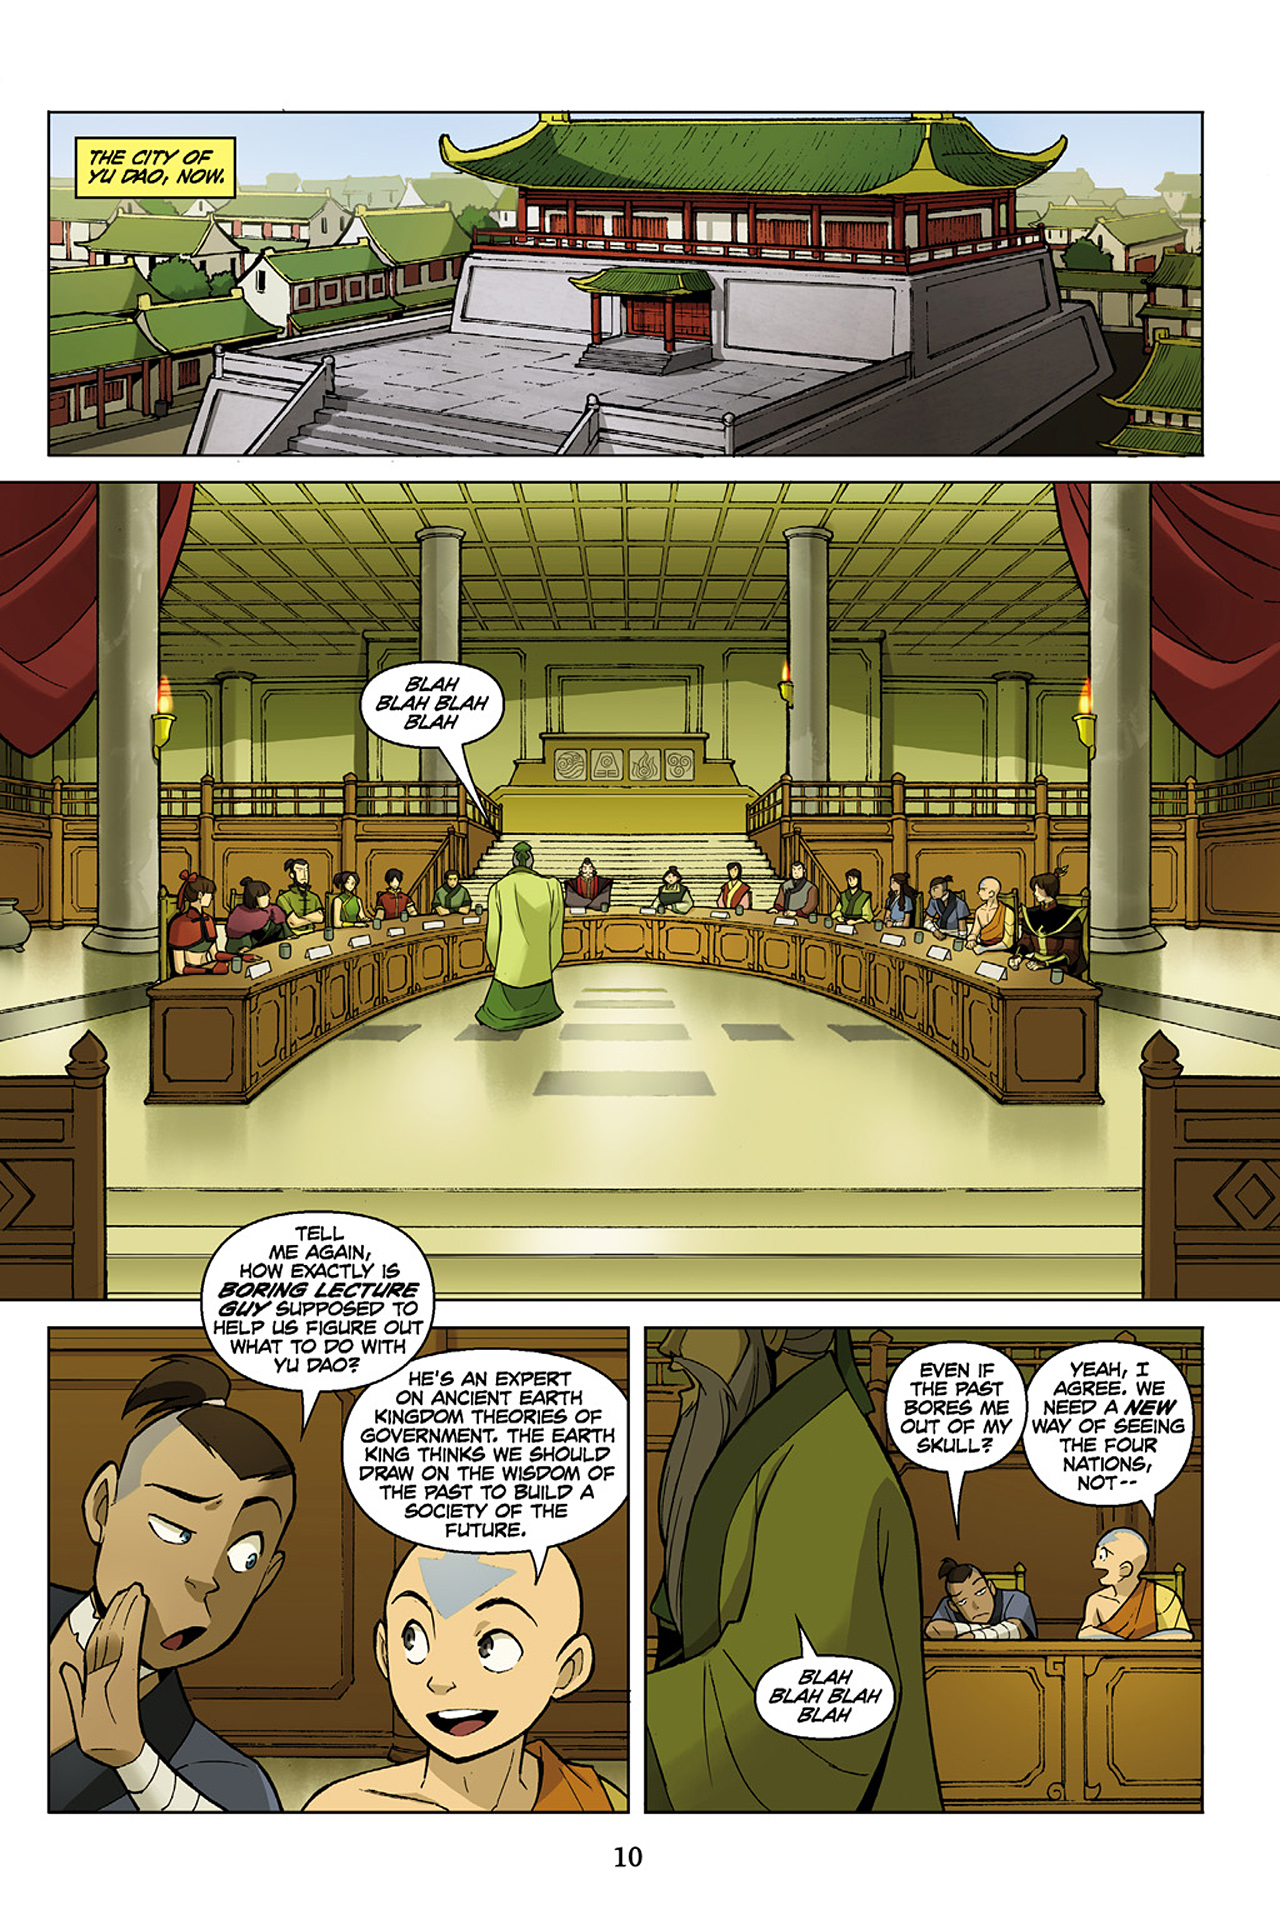 Read online Nickelodeon Avatar: The Last Airbender - The Search comic -  Issue # Part 1 - 11